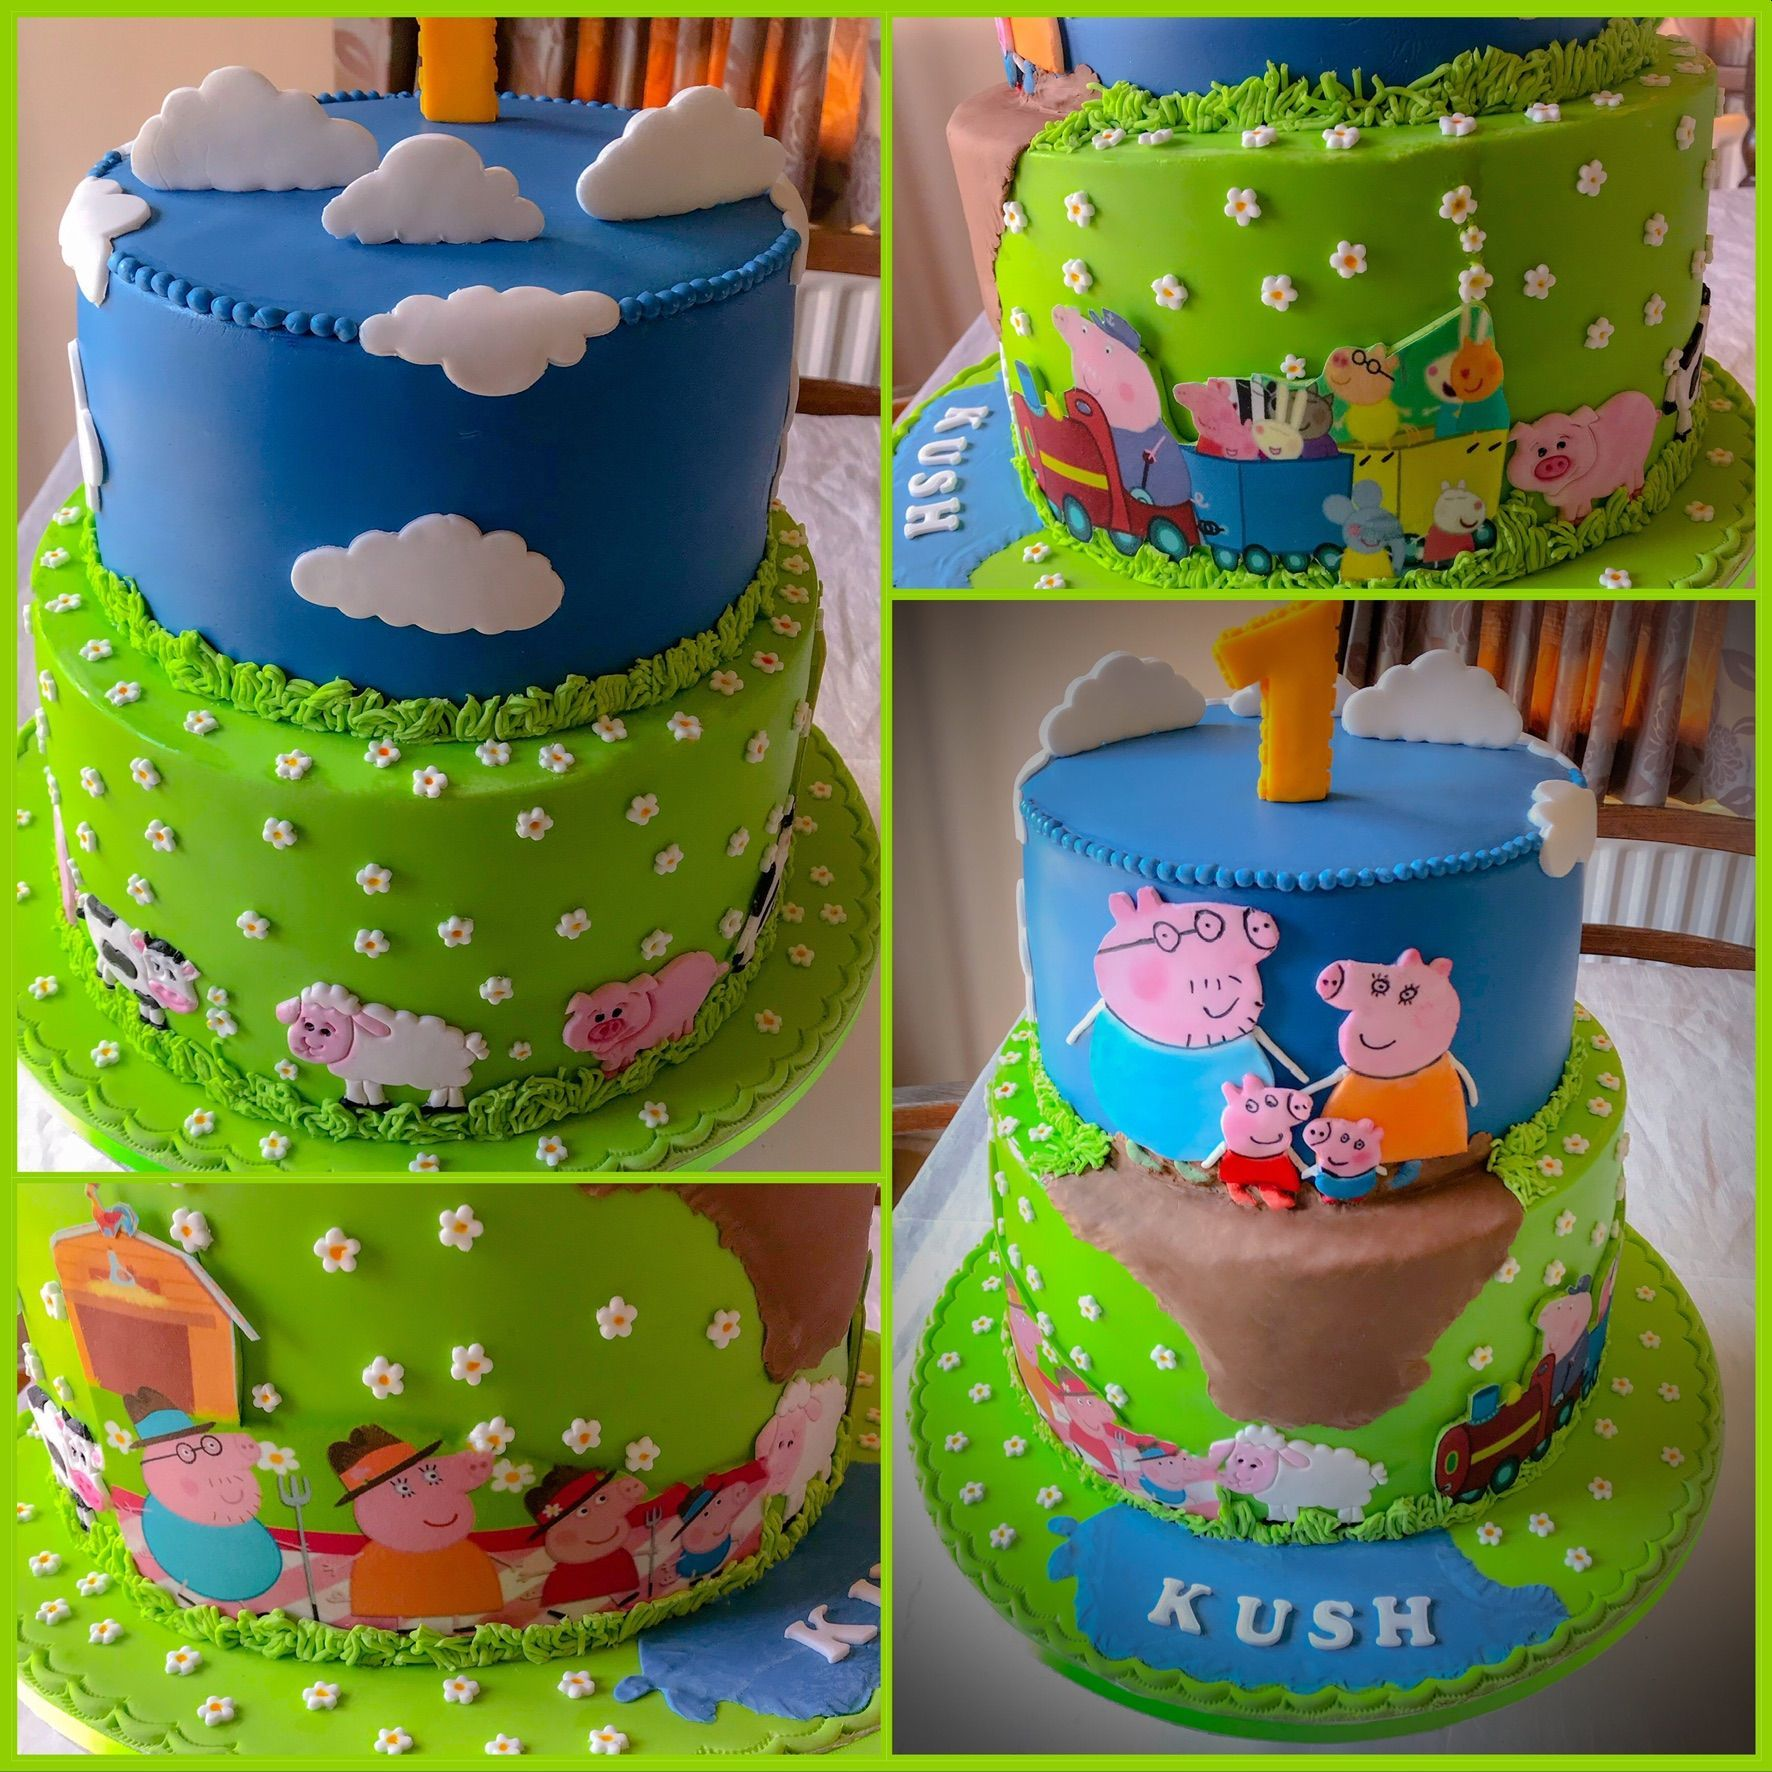 peppa pig cake collage#